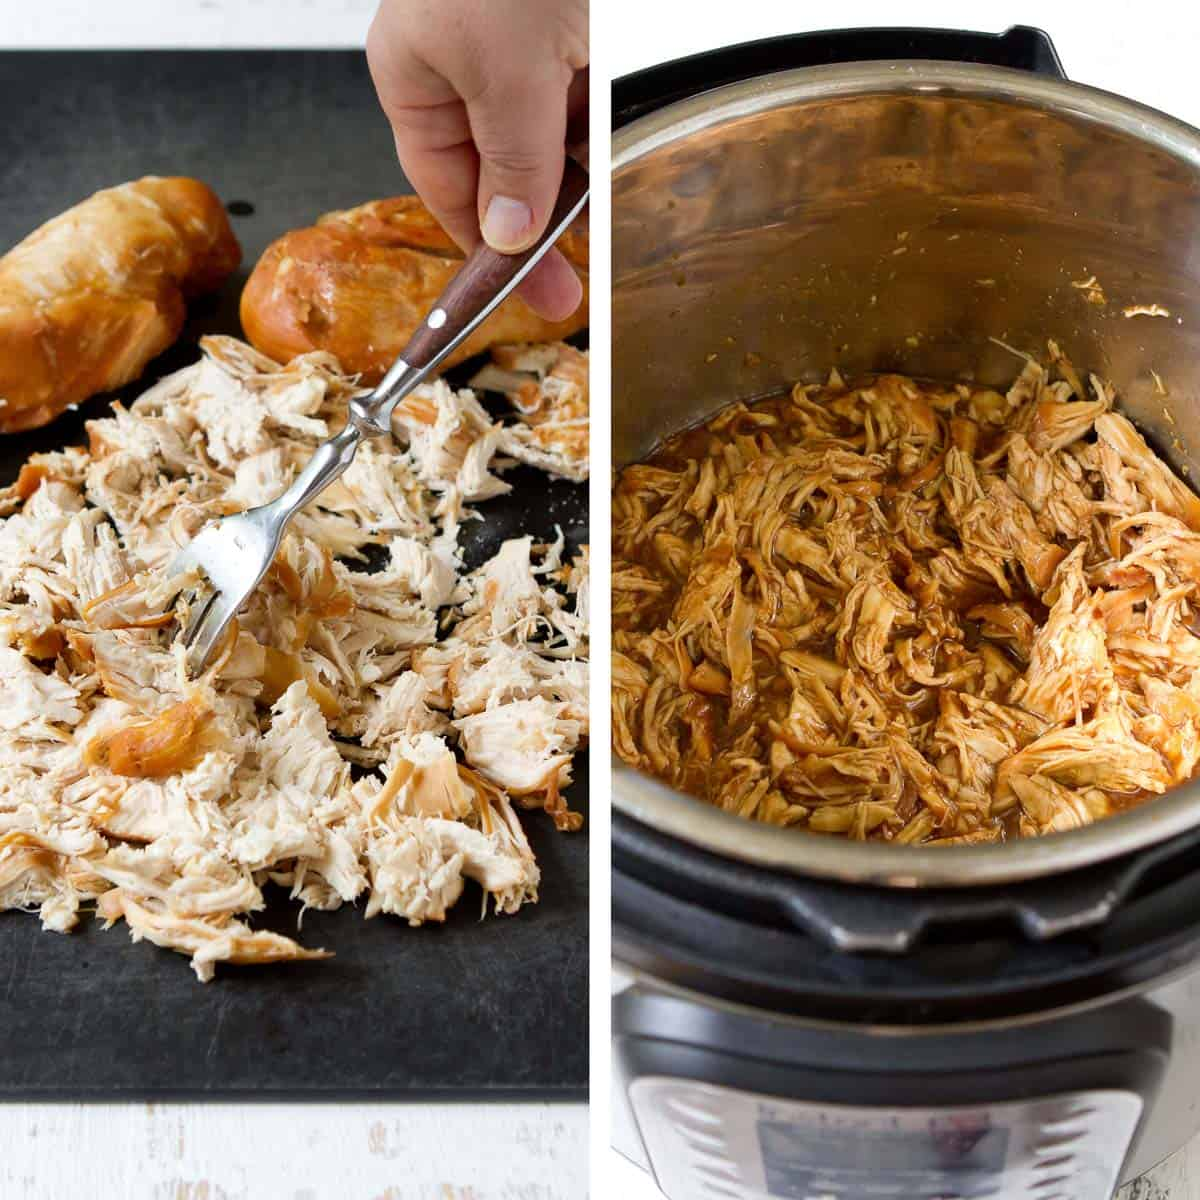 Collage of shredded chicken on cutting board and in Instant Pot with sauce.